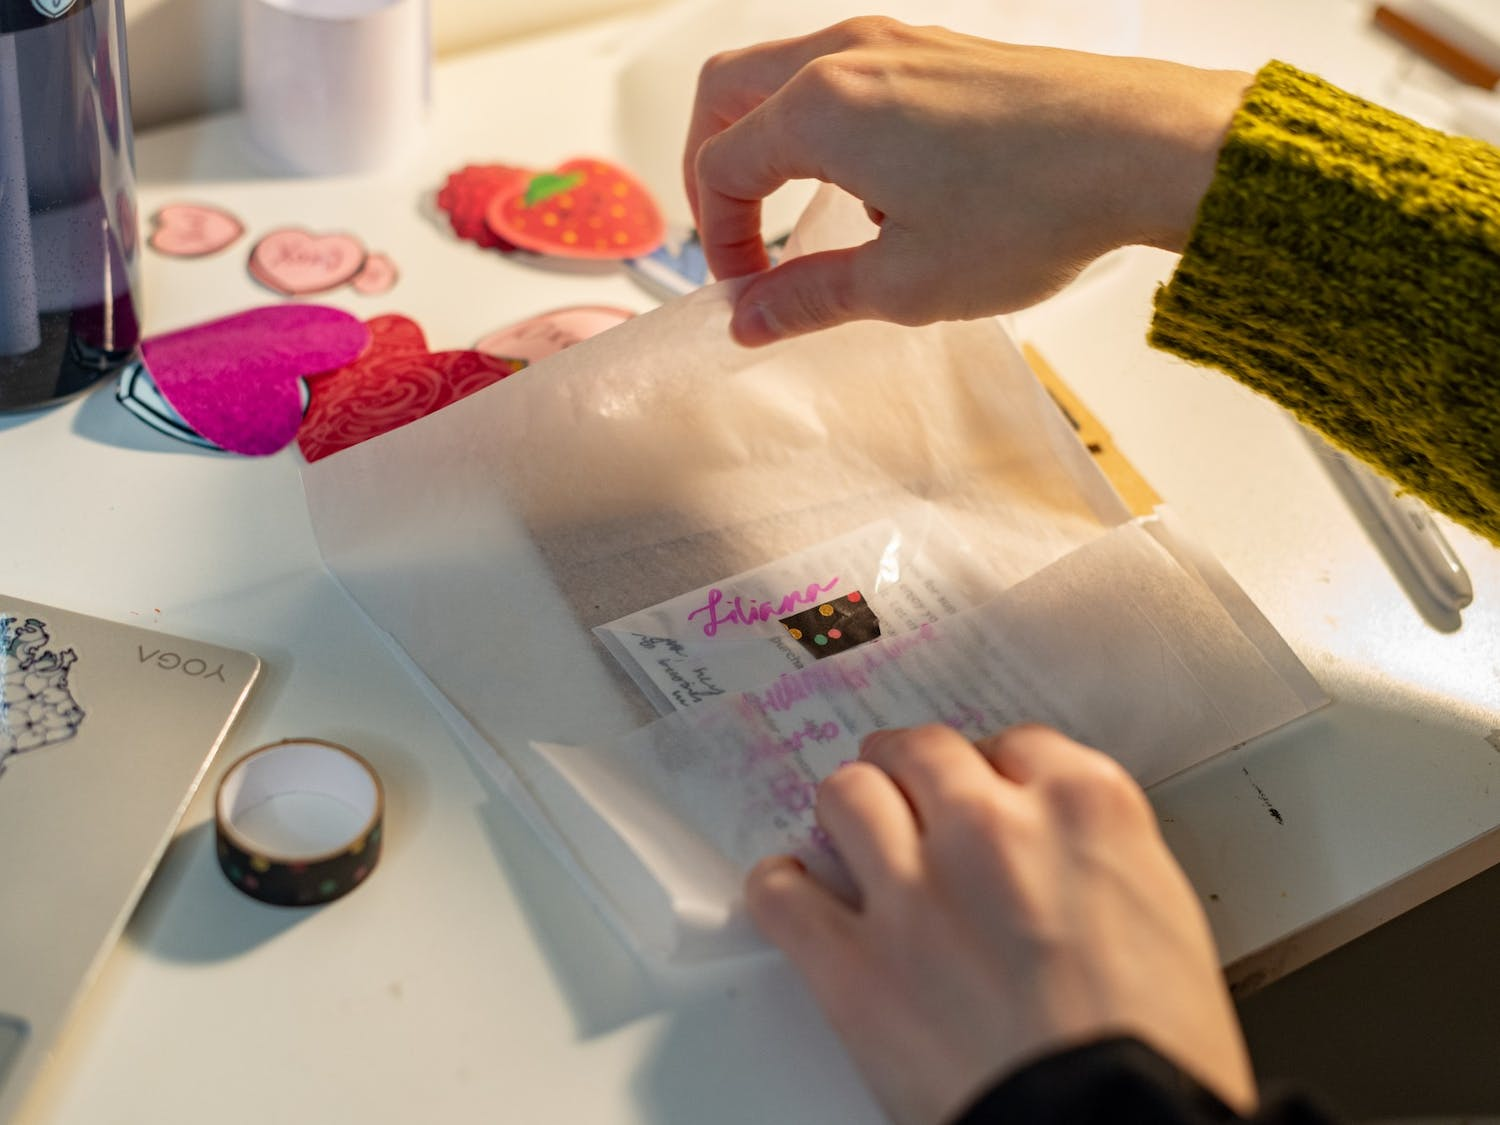 Senior Marina Carolina Fela-Castillo packages a sticker order on Monday, Feb. 15, 2021. Fela-Castillo customizes each element of her packaging for customers with hand-written notes and hand-drawn designs.